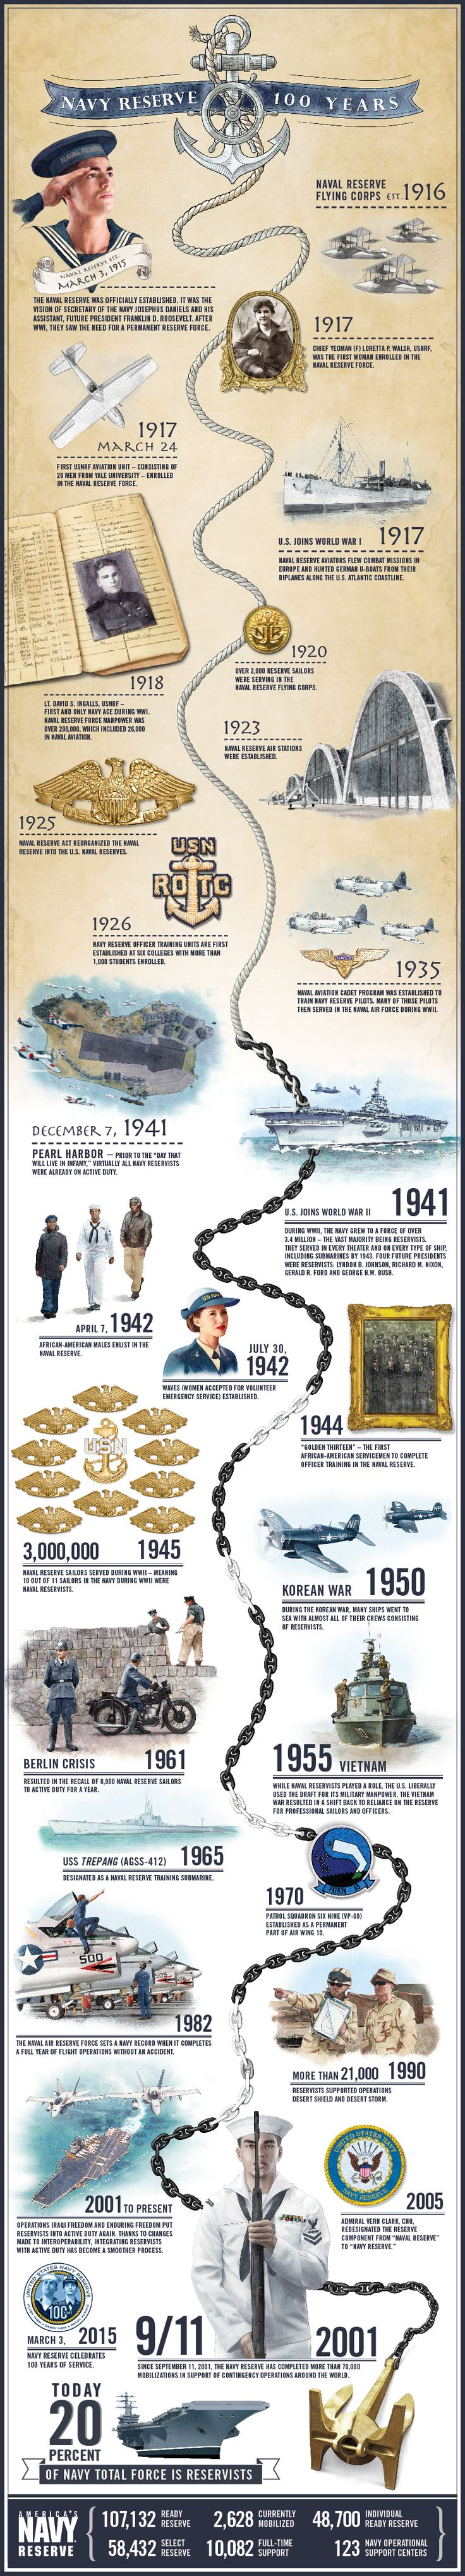 On March 3 1915, the Naval Reserve was officially established. It was the vision of Secretary of the Navy Josephus Daniels and his assistant, future President Franklin D. Roosevelt. Explore the firsts, achievements and successes in this graphic showcasing 100 years of the U.S. Navy Reserve.